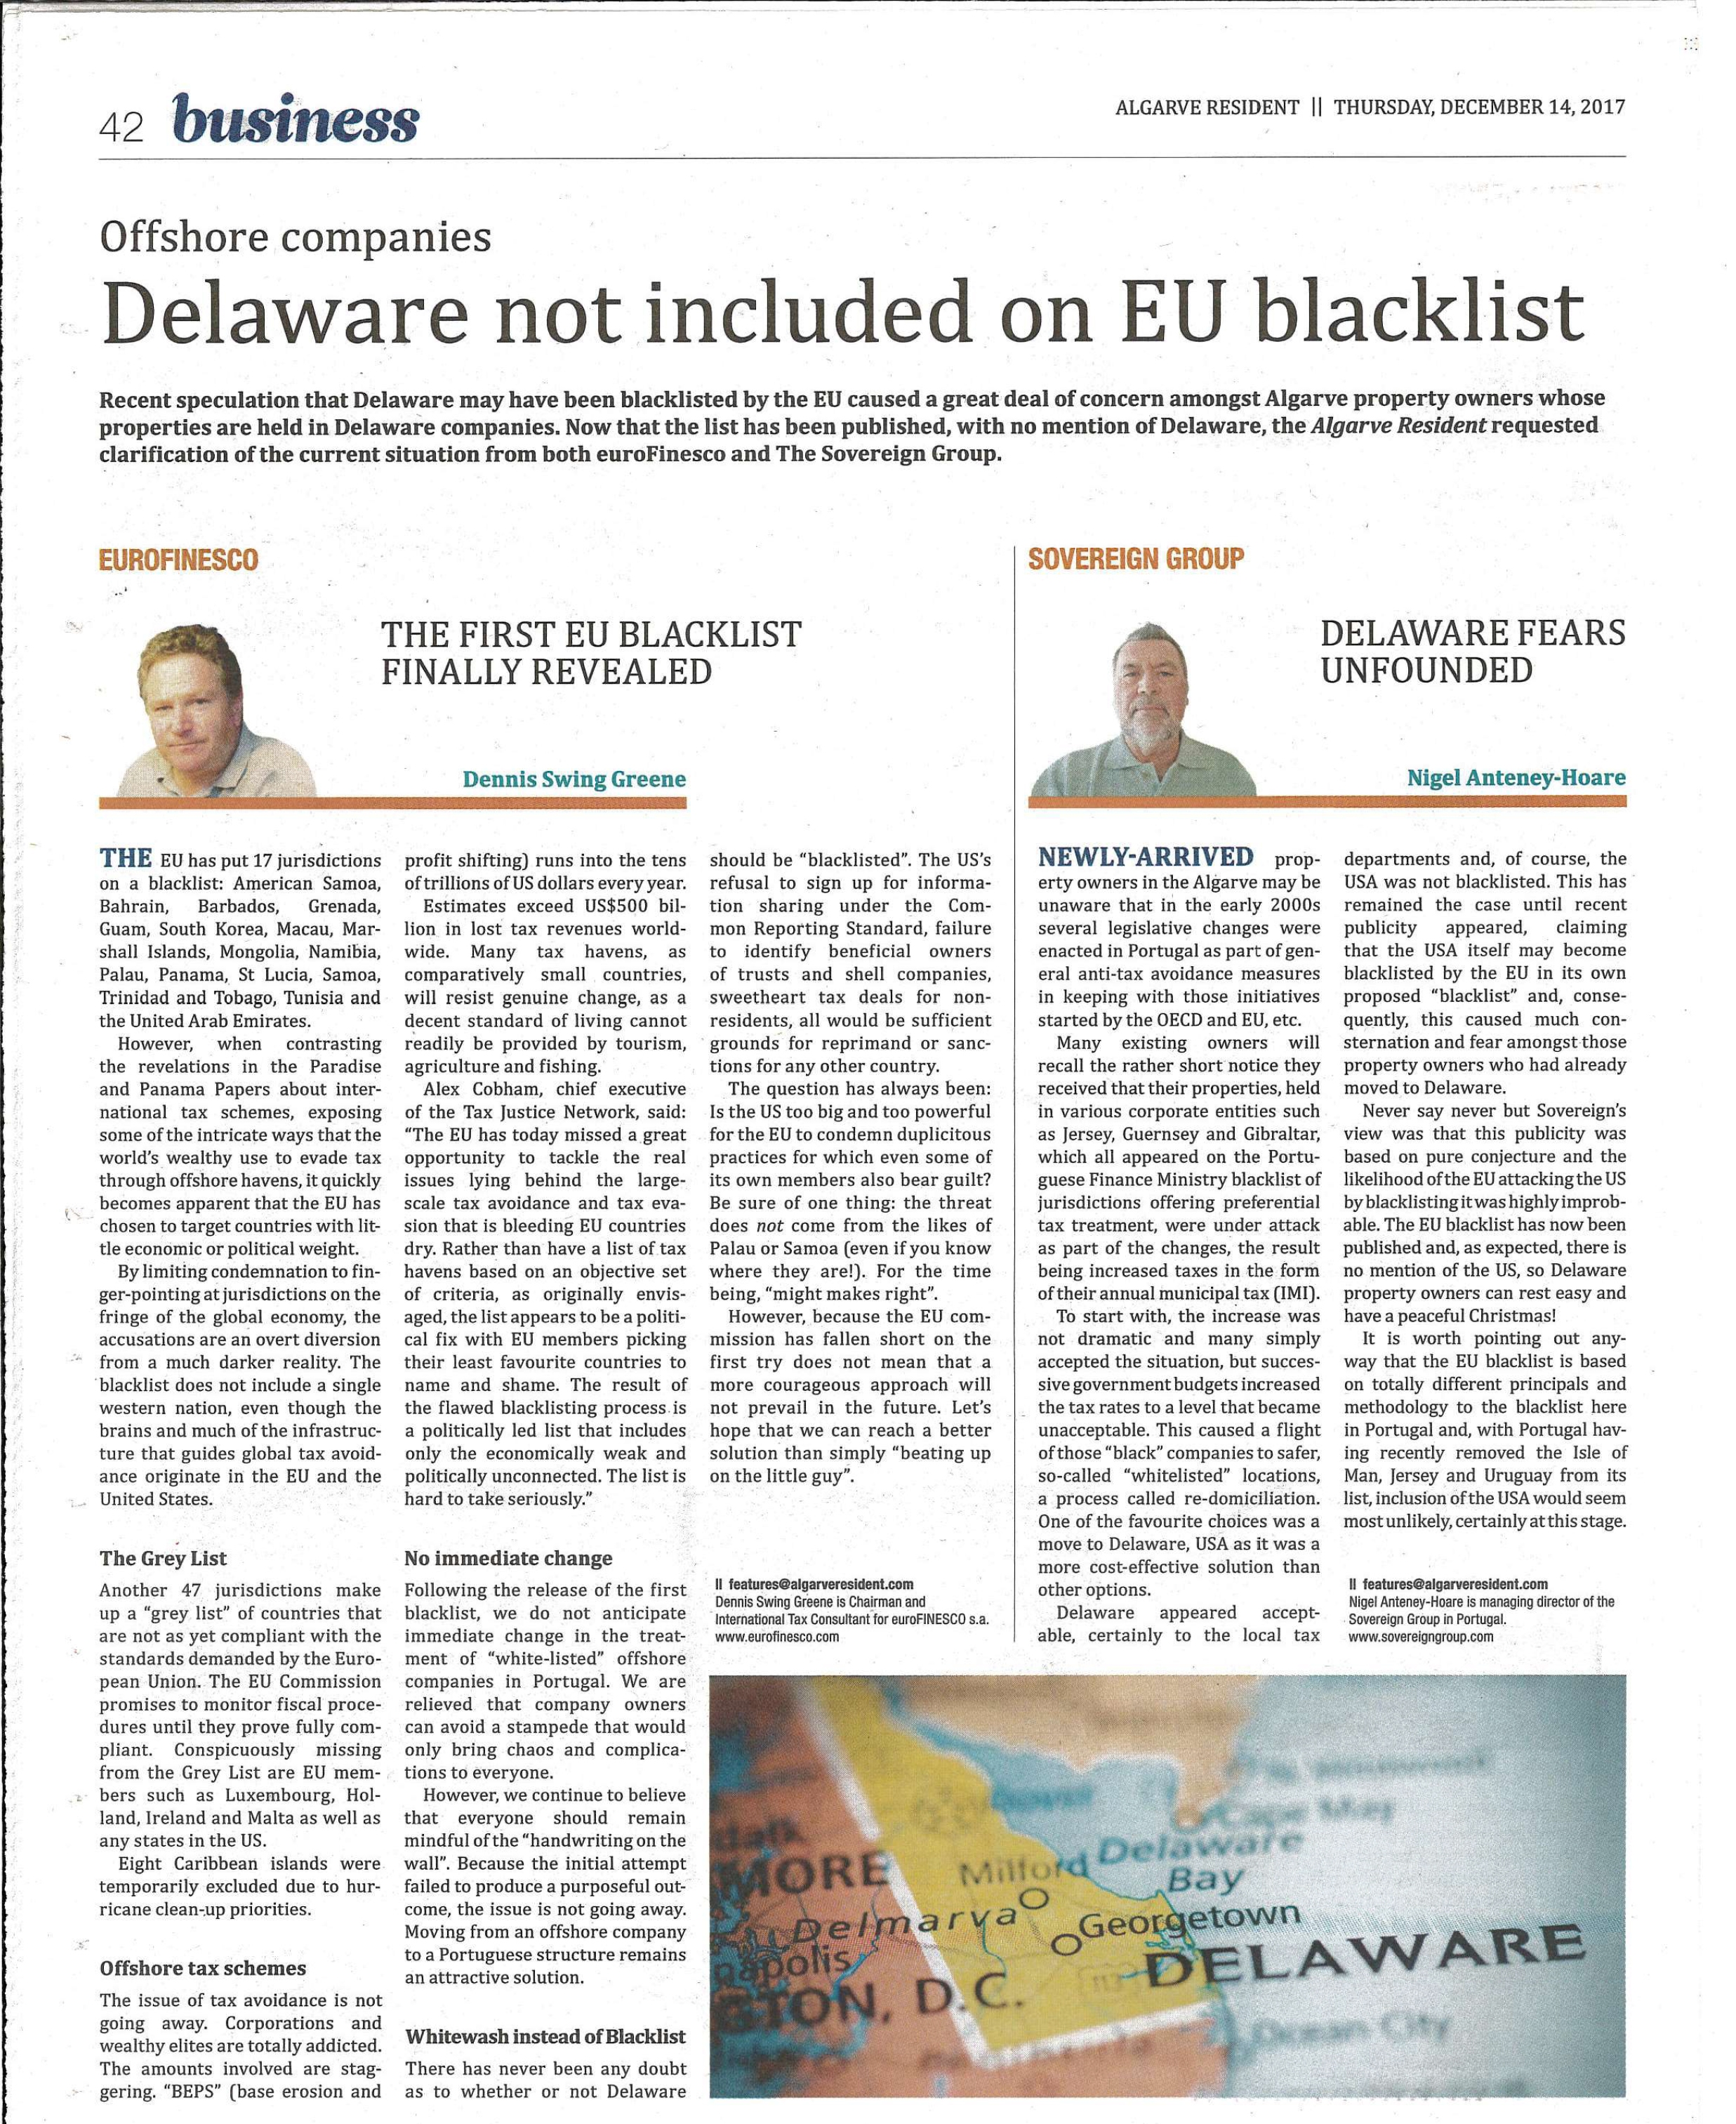 Delaware not included on EU blacklist